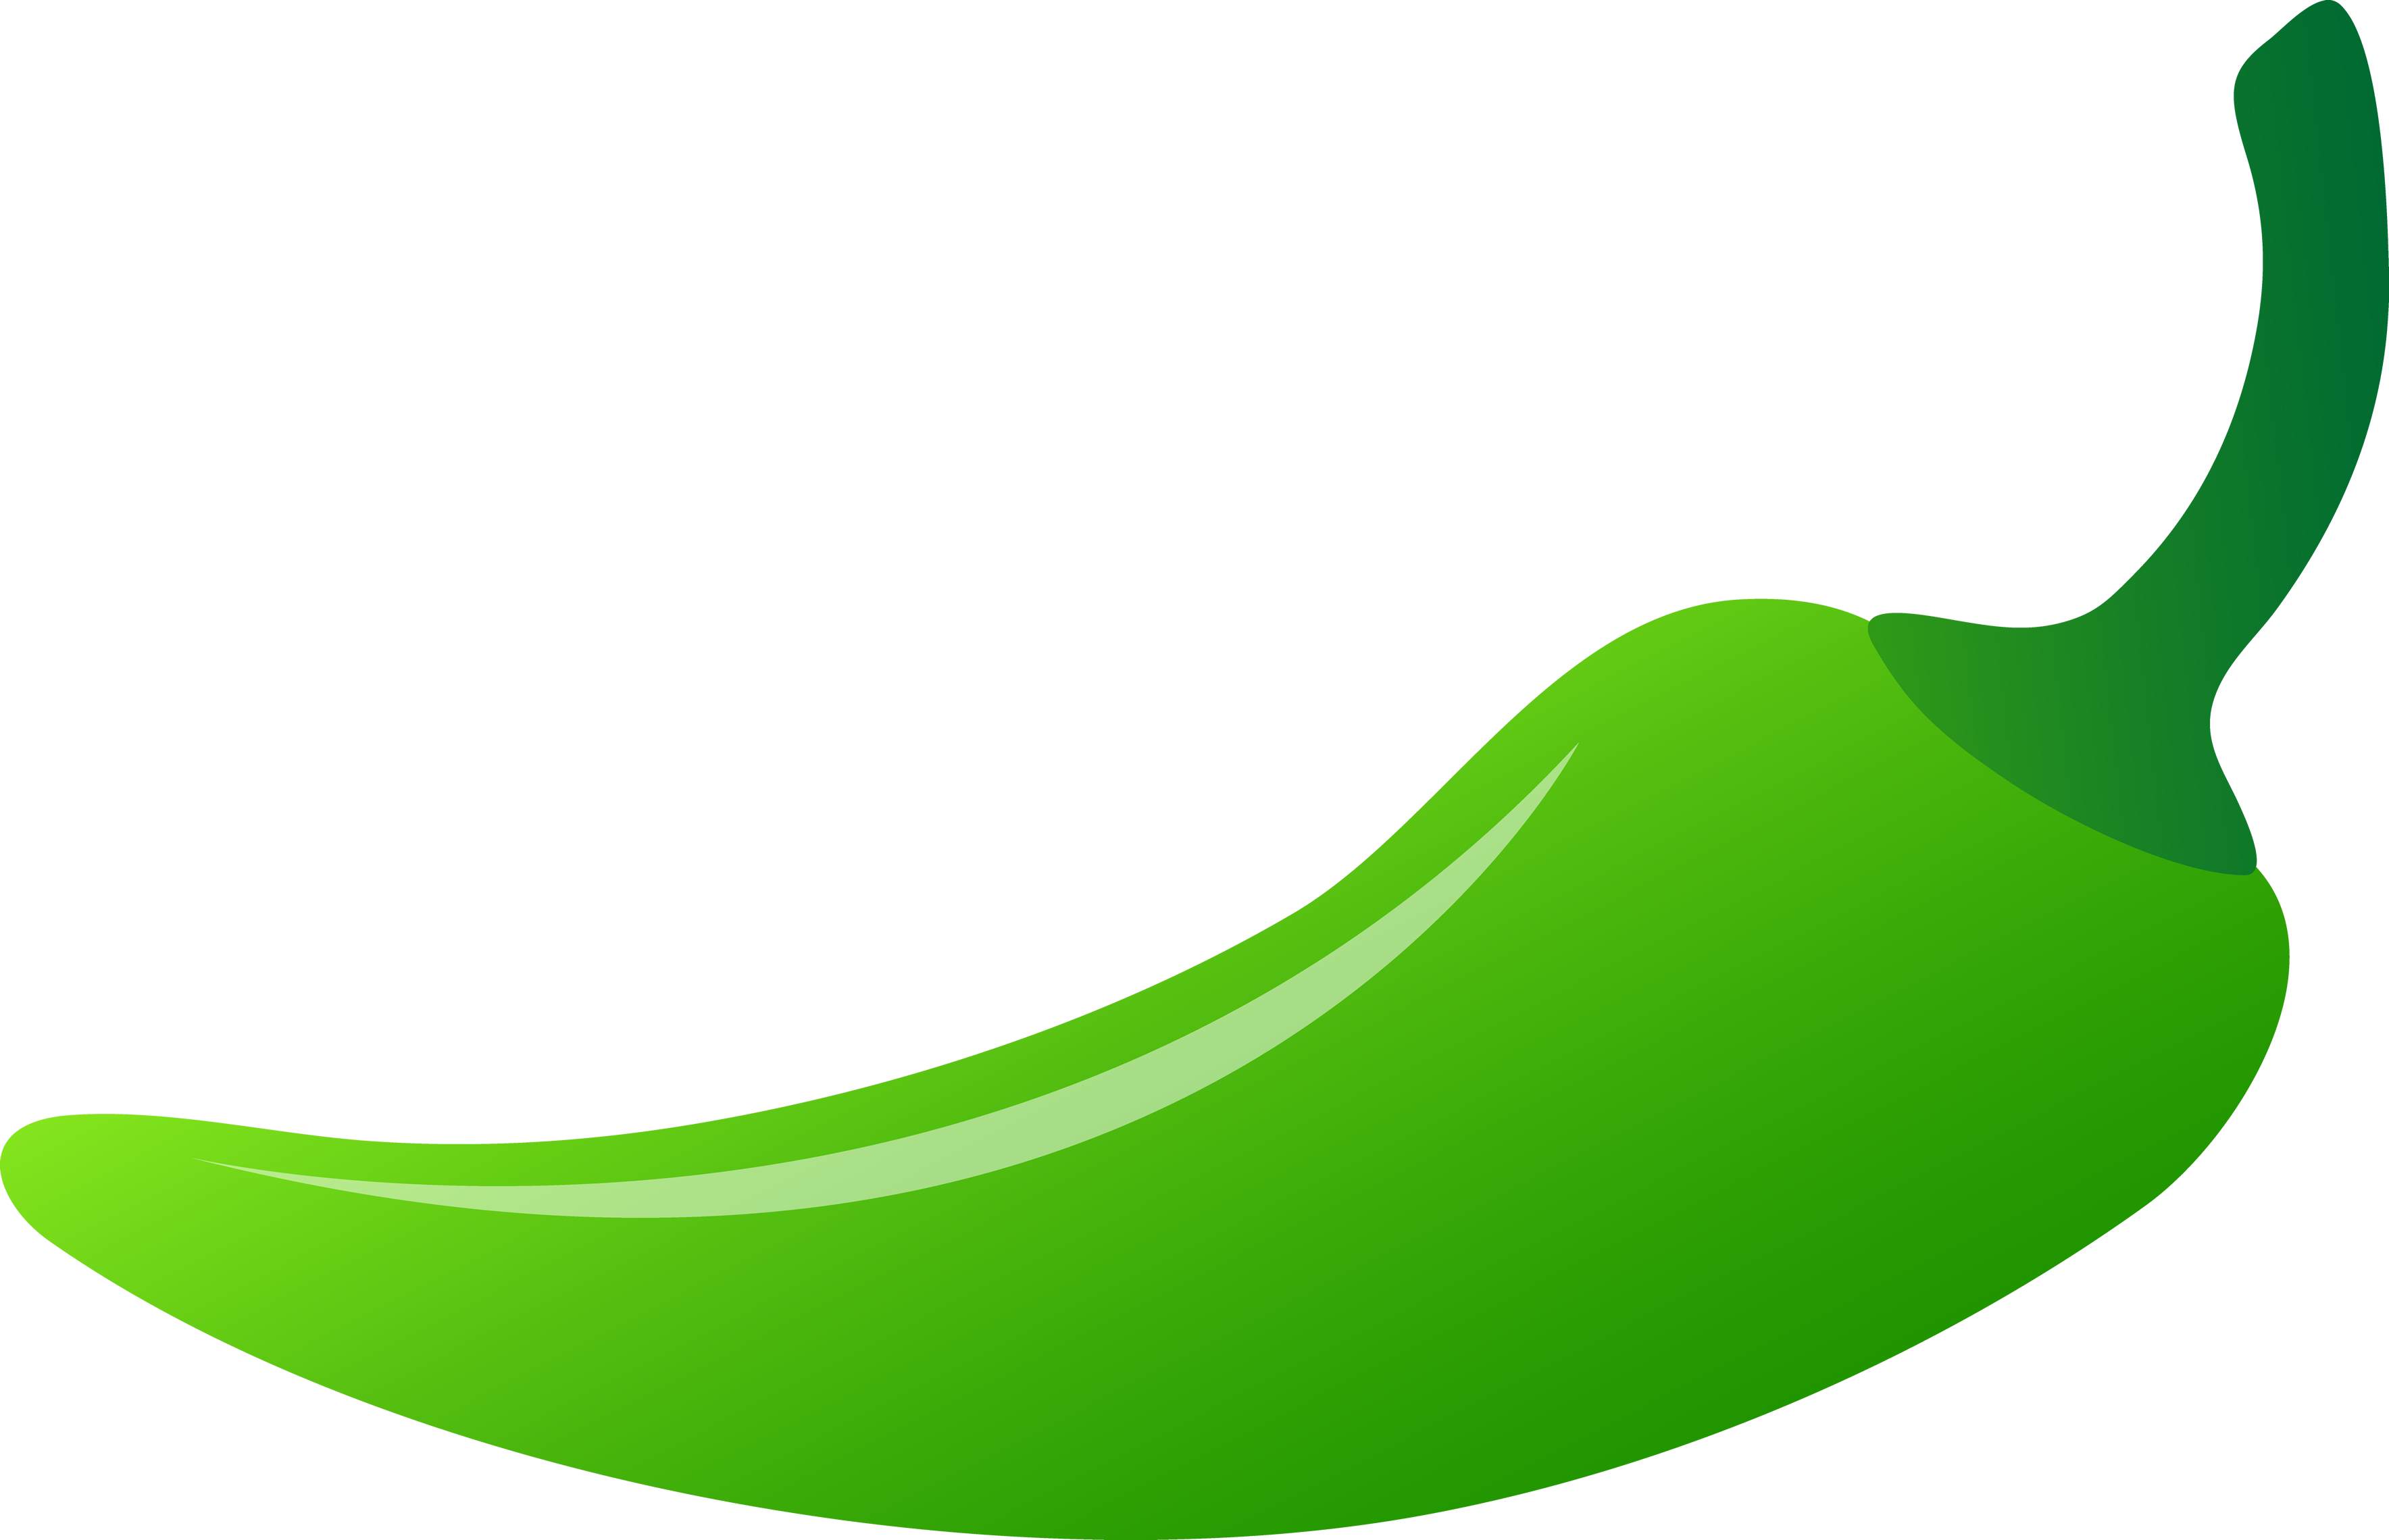 Peppers clipart habanero. Jalapeno png hd transparent